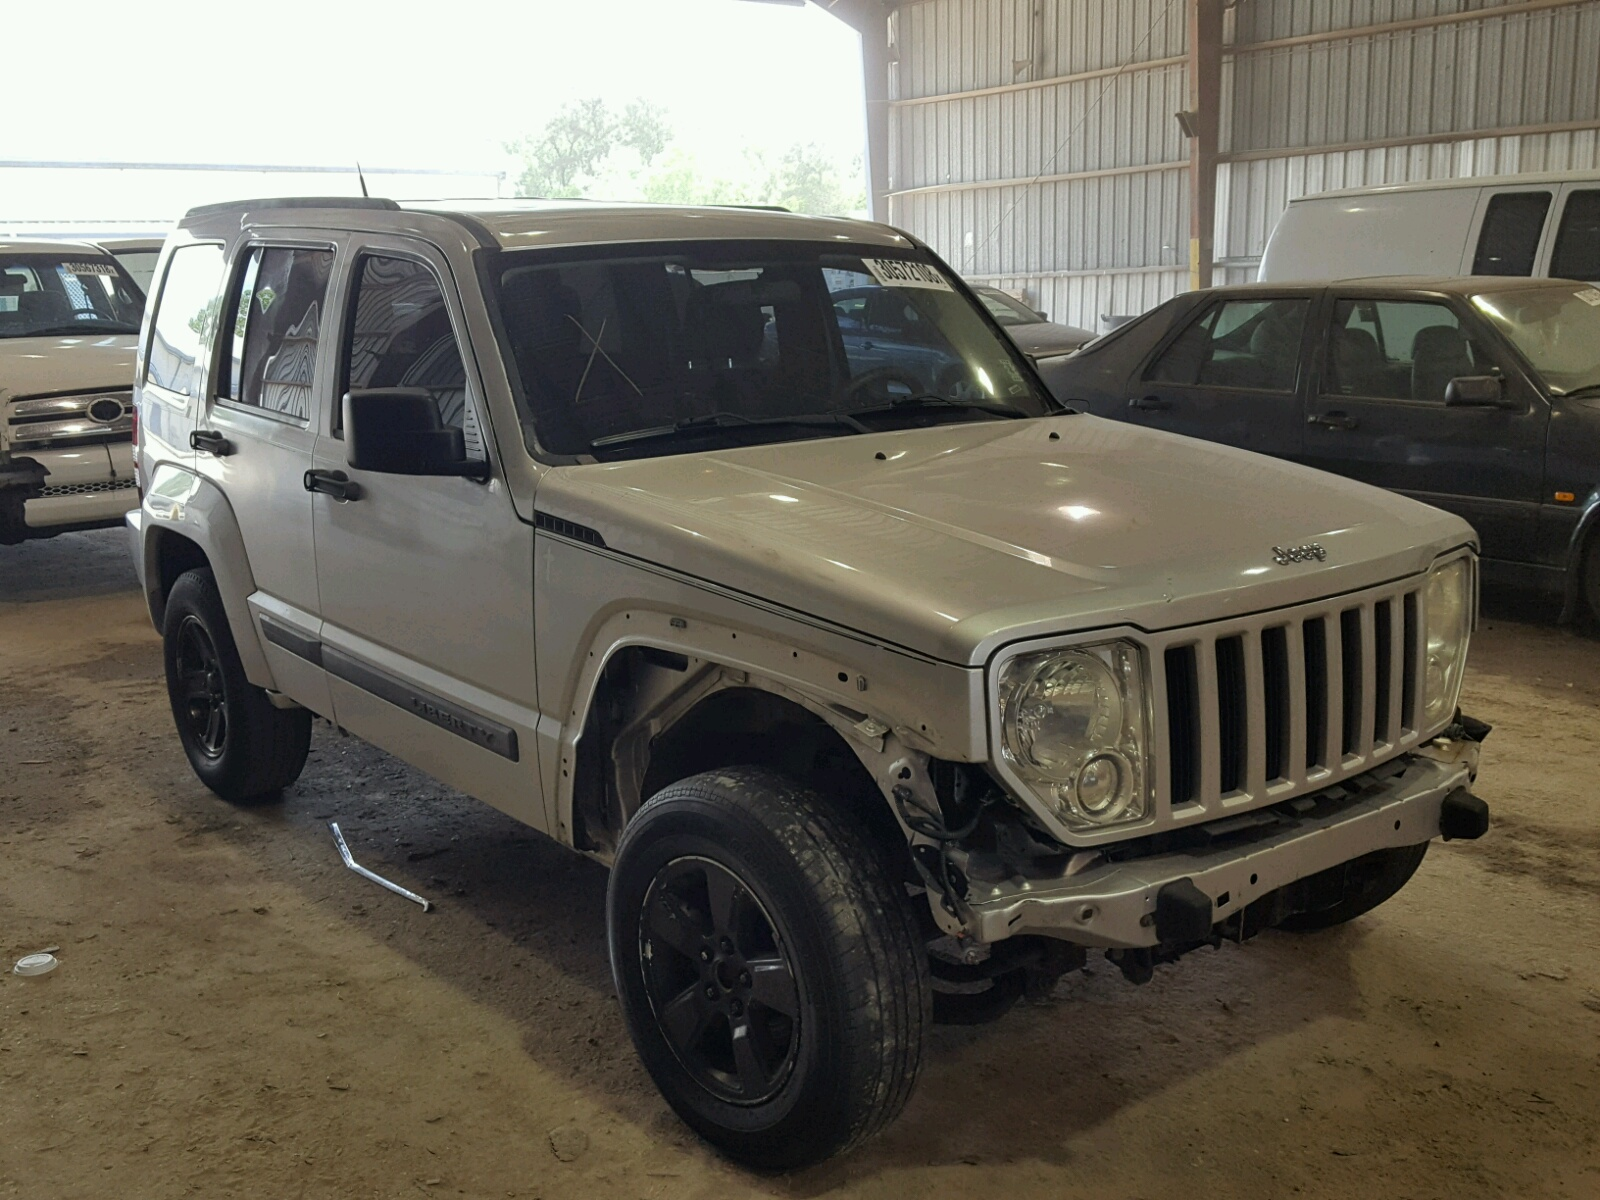 veh in options baton la vehicle suv wrangler unlimited x jeep rouge